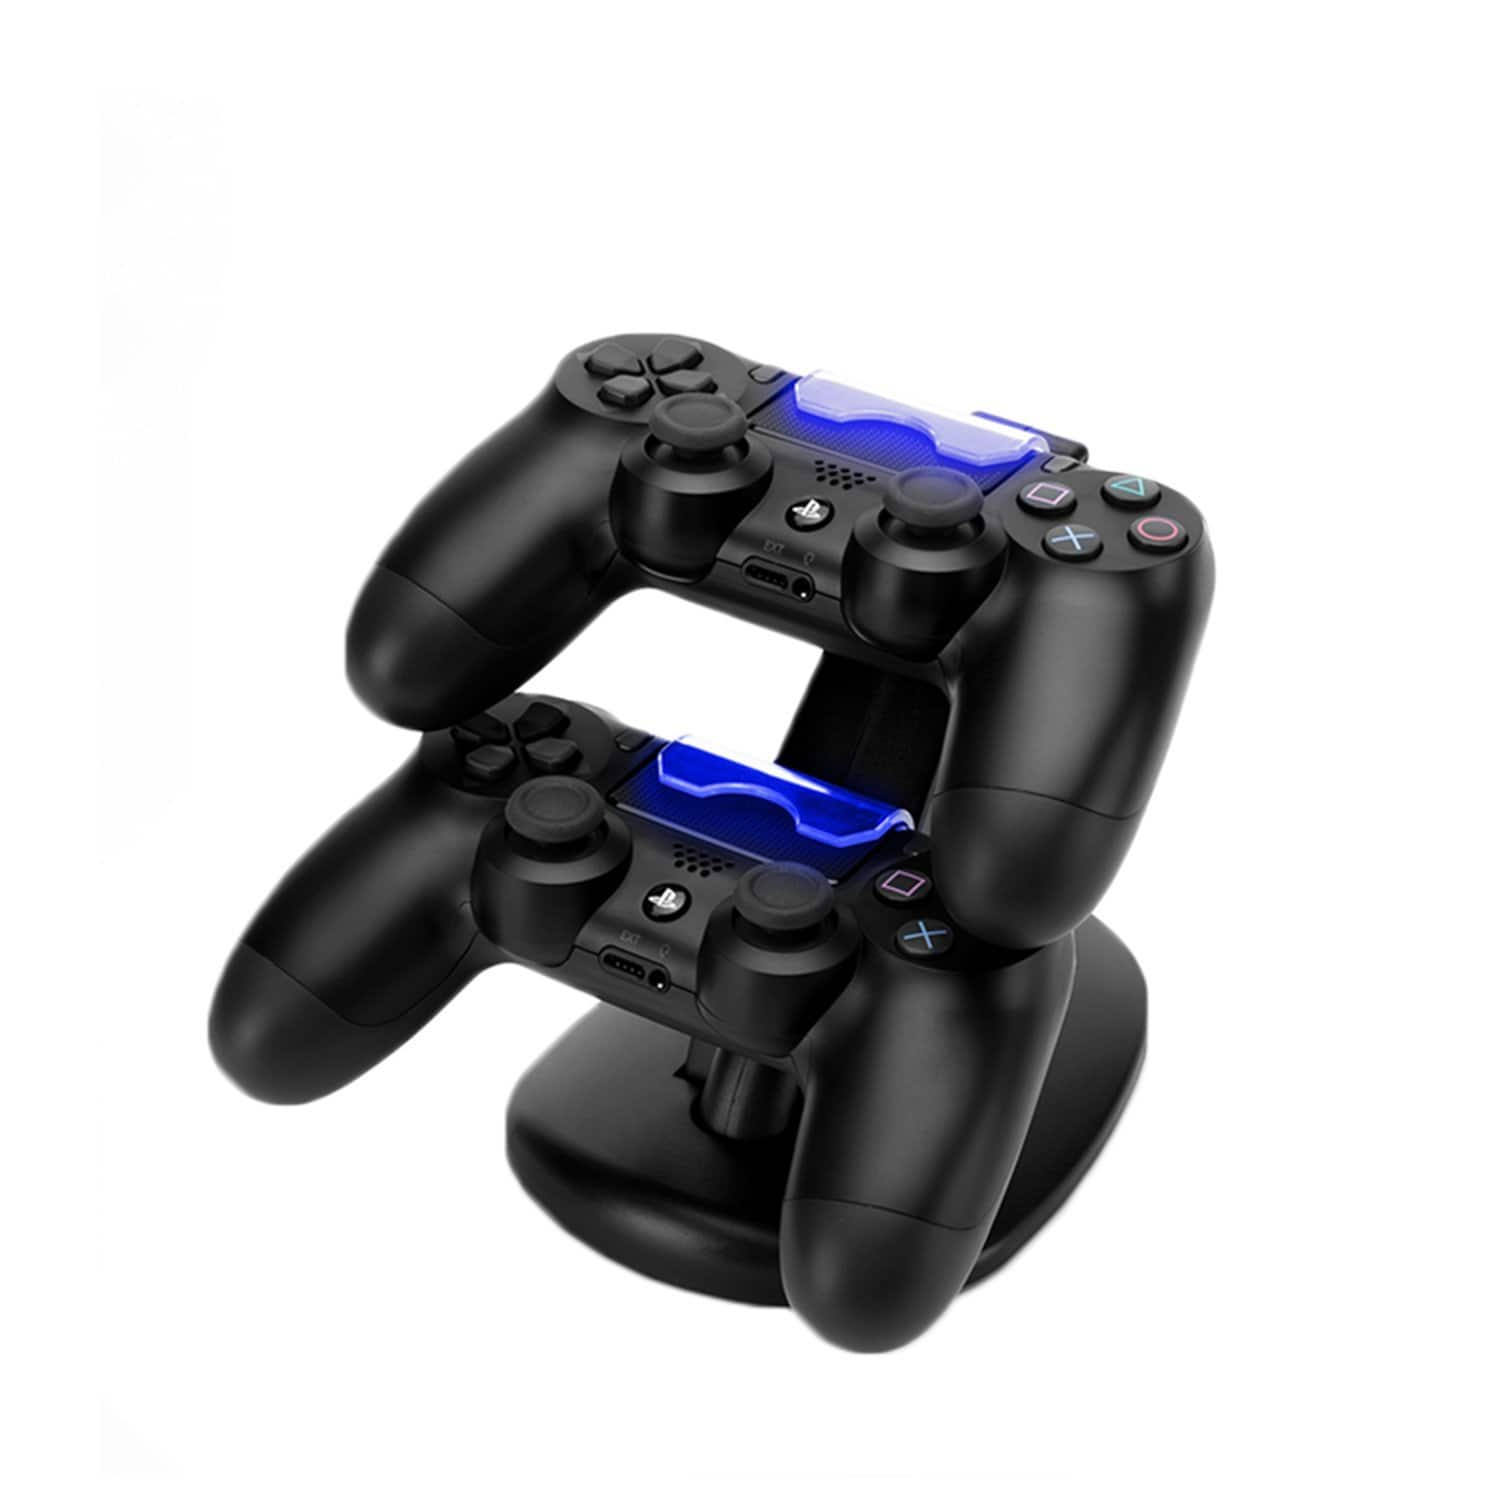 MOFIR PS4 Dual USB Controller Charging Dock Station with LED Indicator for Sony Playstation 4 [PS4] $5.99 AC + FS Amazon Prime